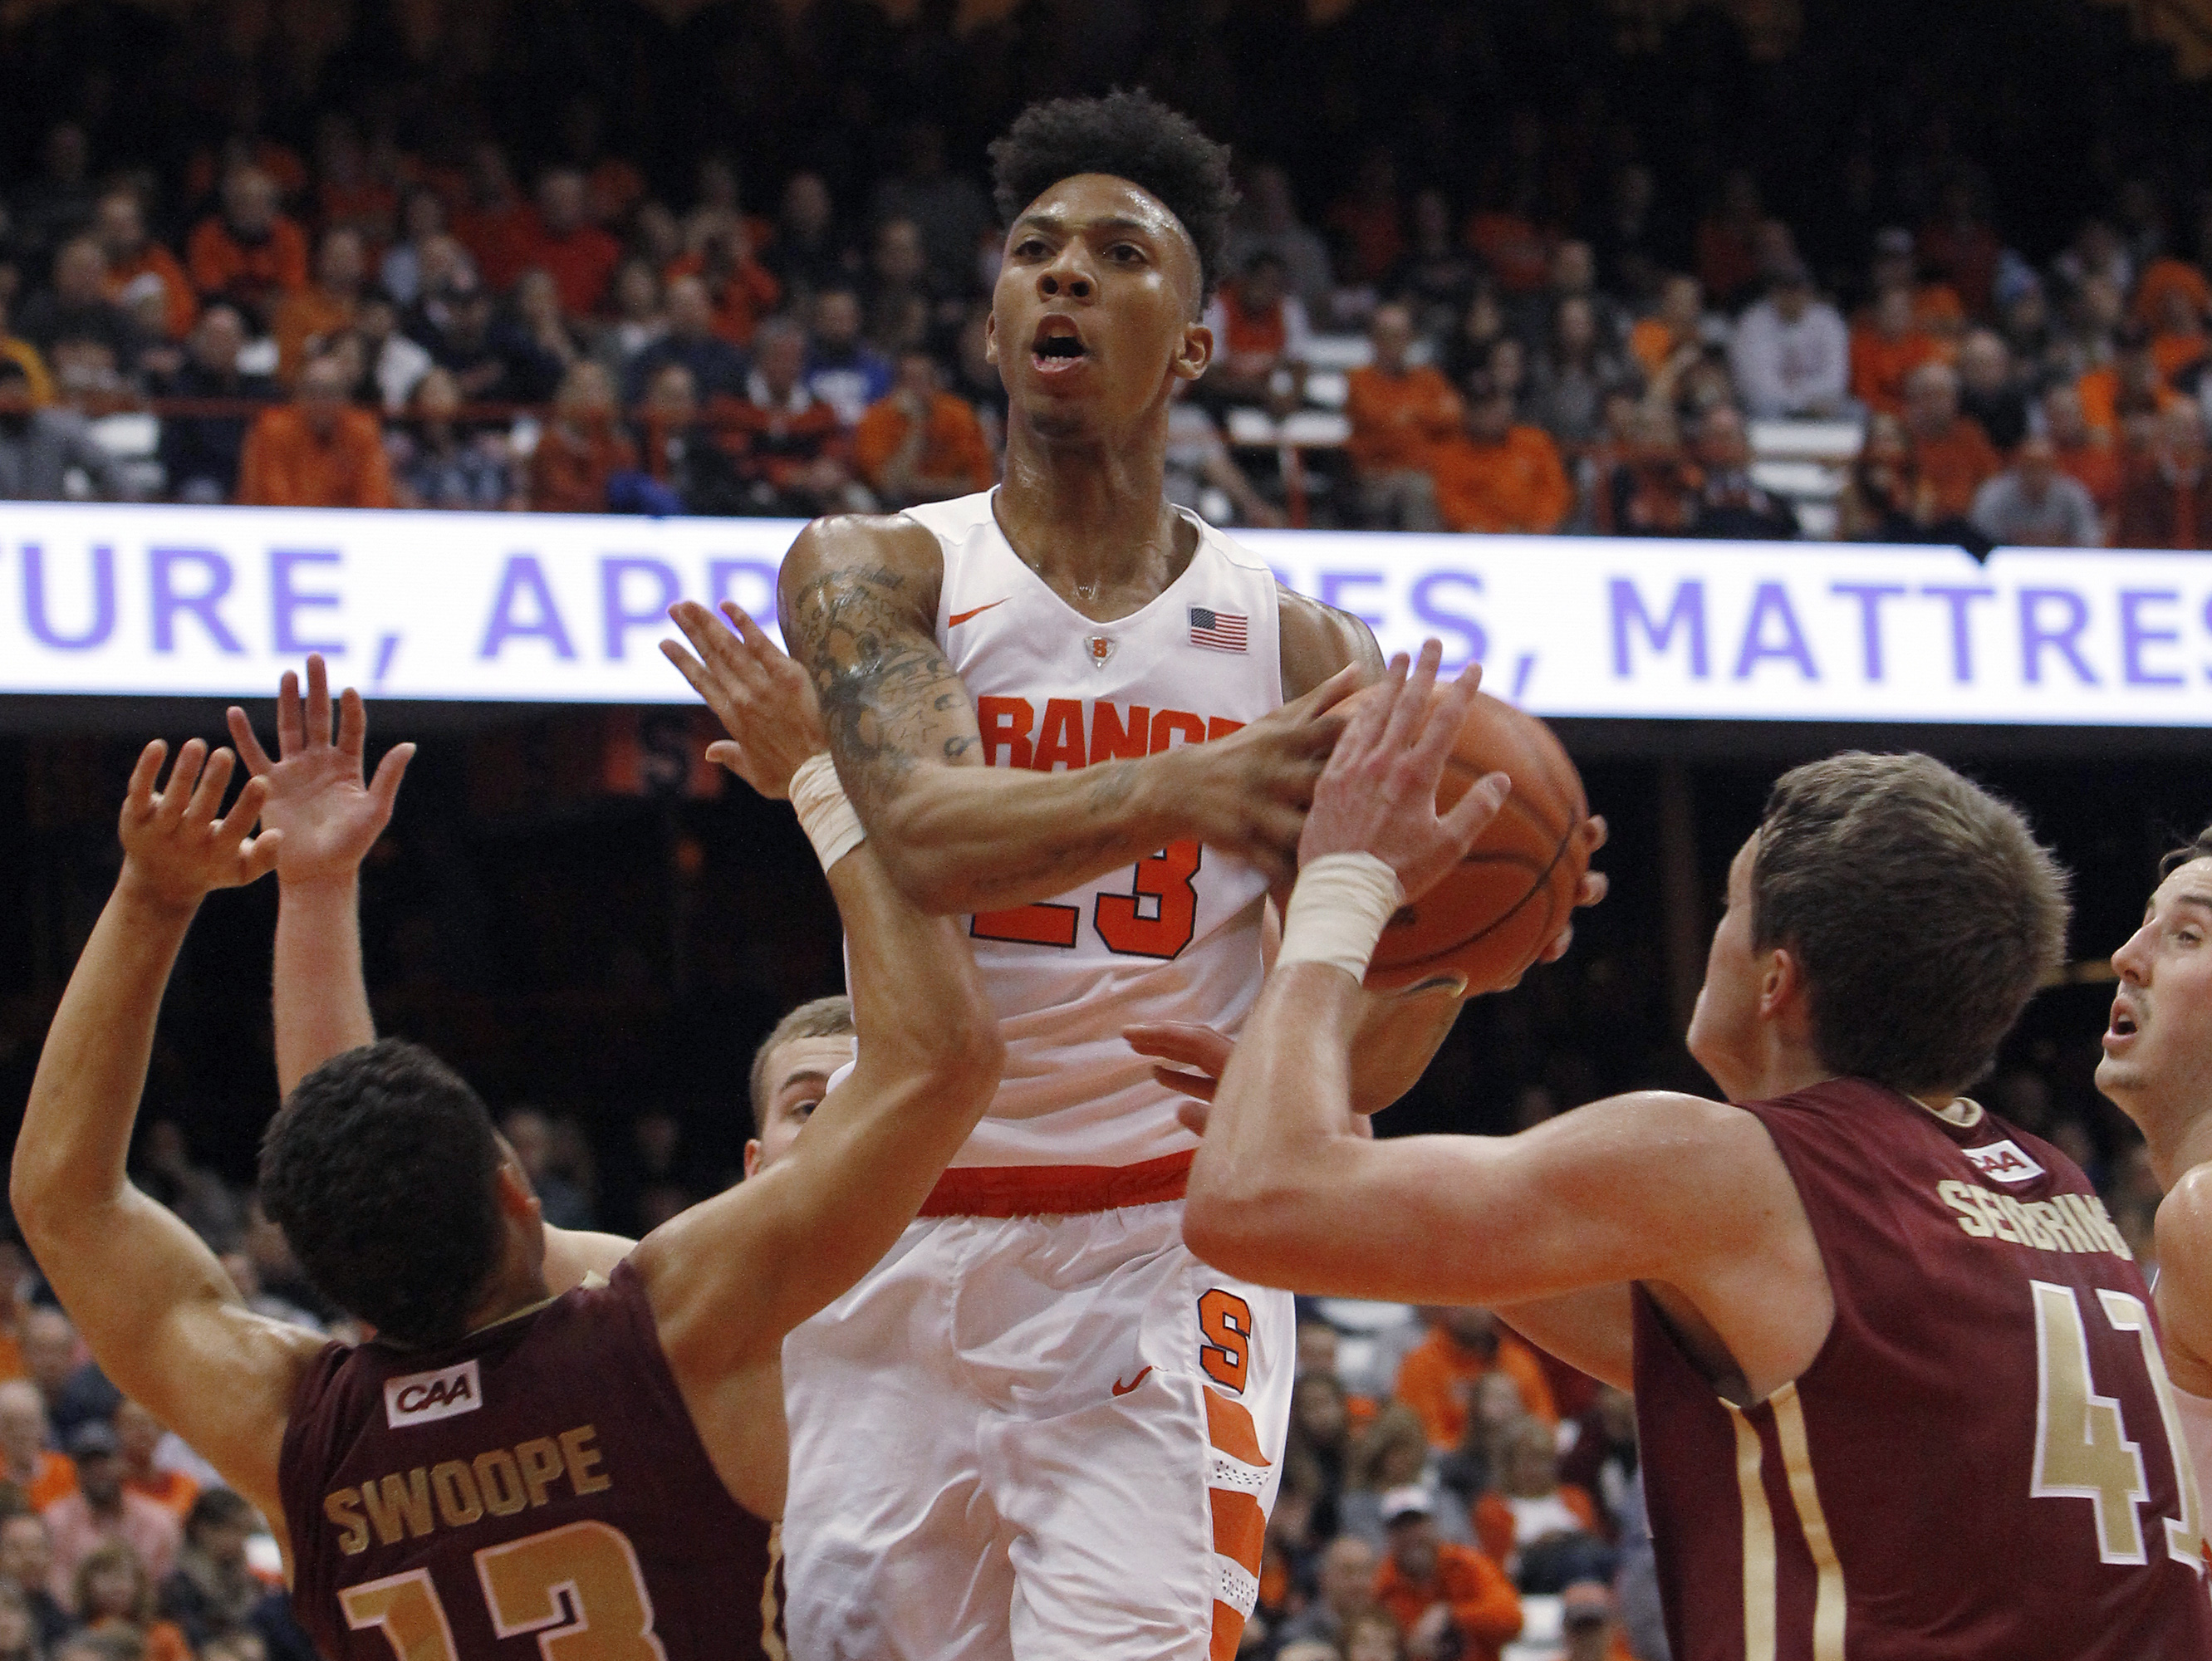 Syracuse's Malachi Richardson, center, looks to the basket between Elon's Dainan Swoope, left, and Tyler Seibring during the second half of an NCAA college basketball game in Syracuse, N.Y., Saturday, Nov. 21, 2015. Syracuse won 66-55. (AP Photo/Nick Lisi